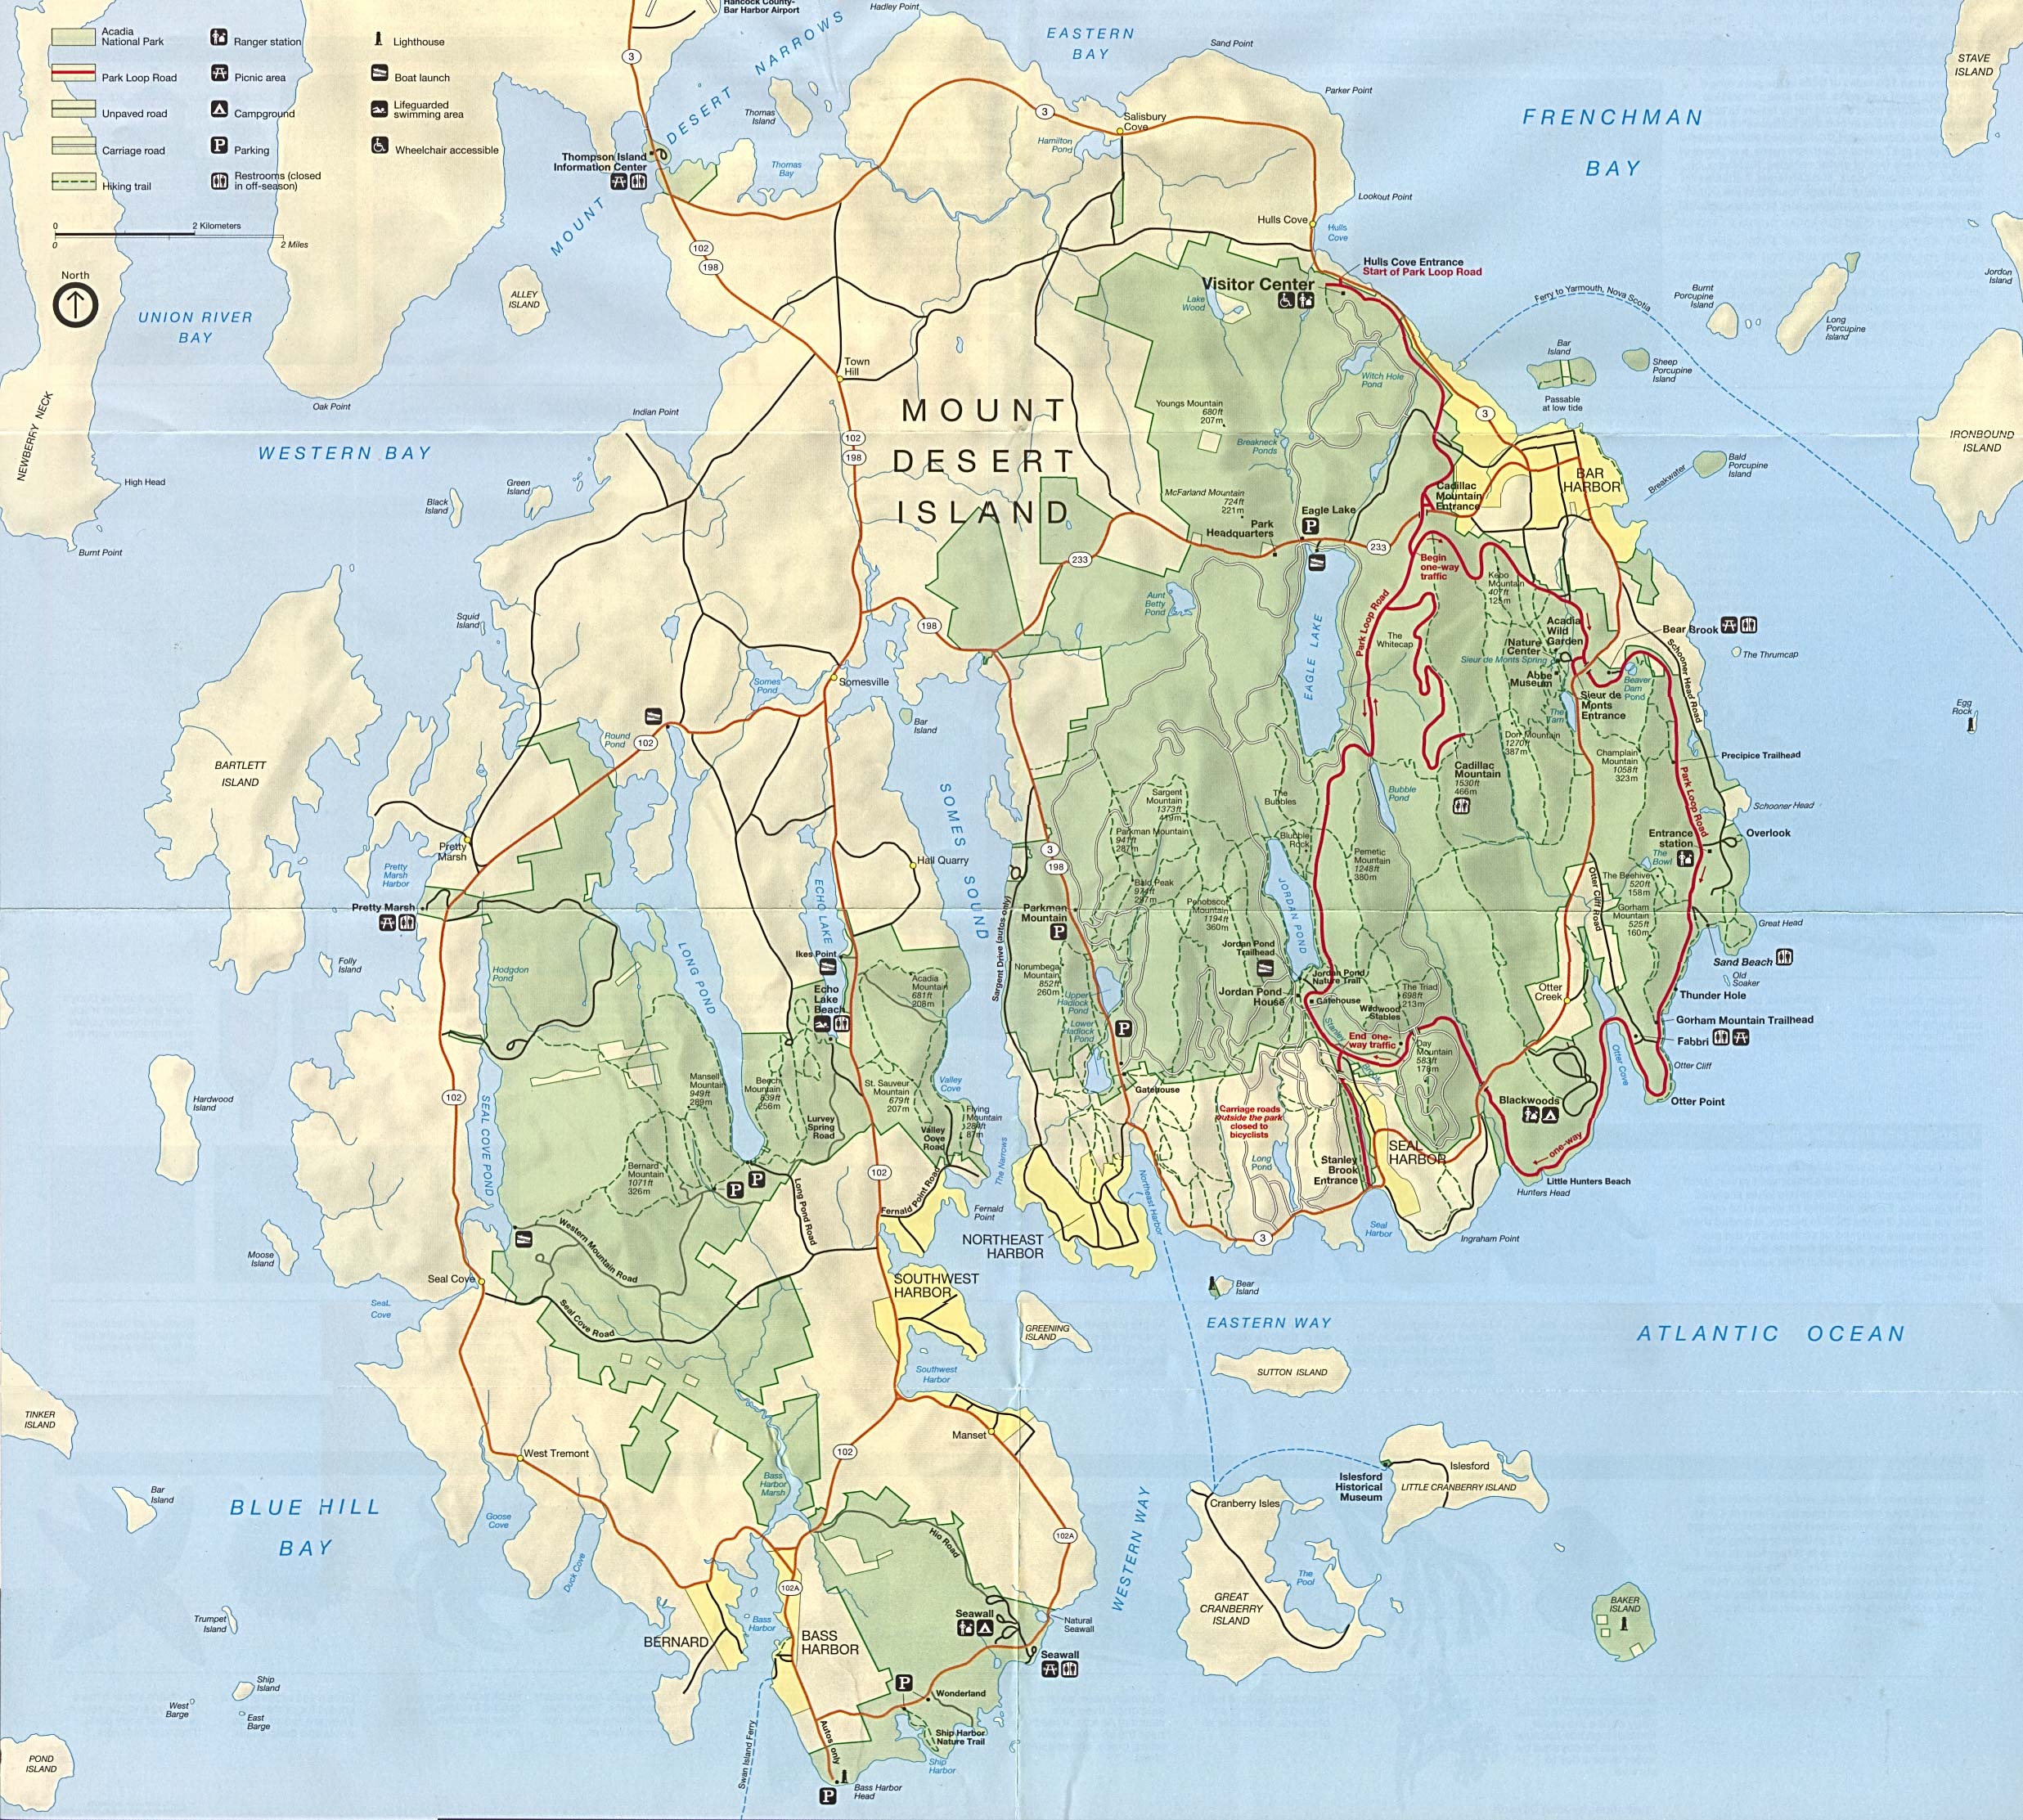 Mount Desert Island Detail Map, Maine, United States